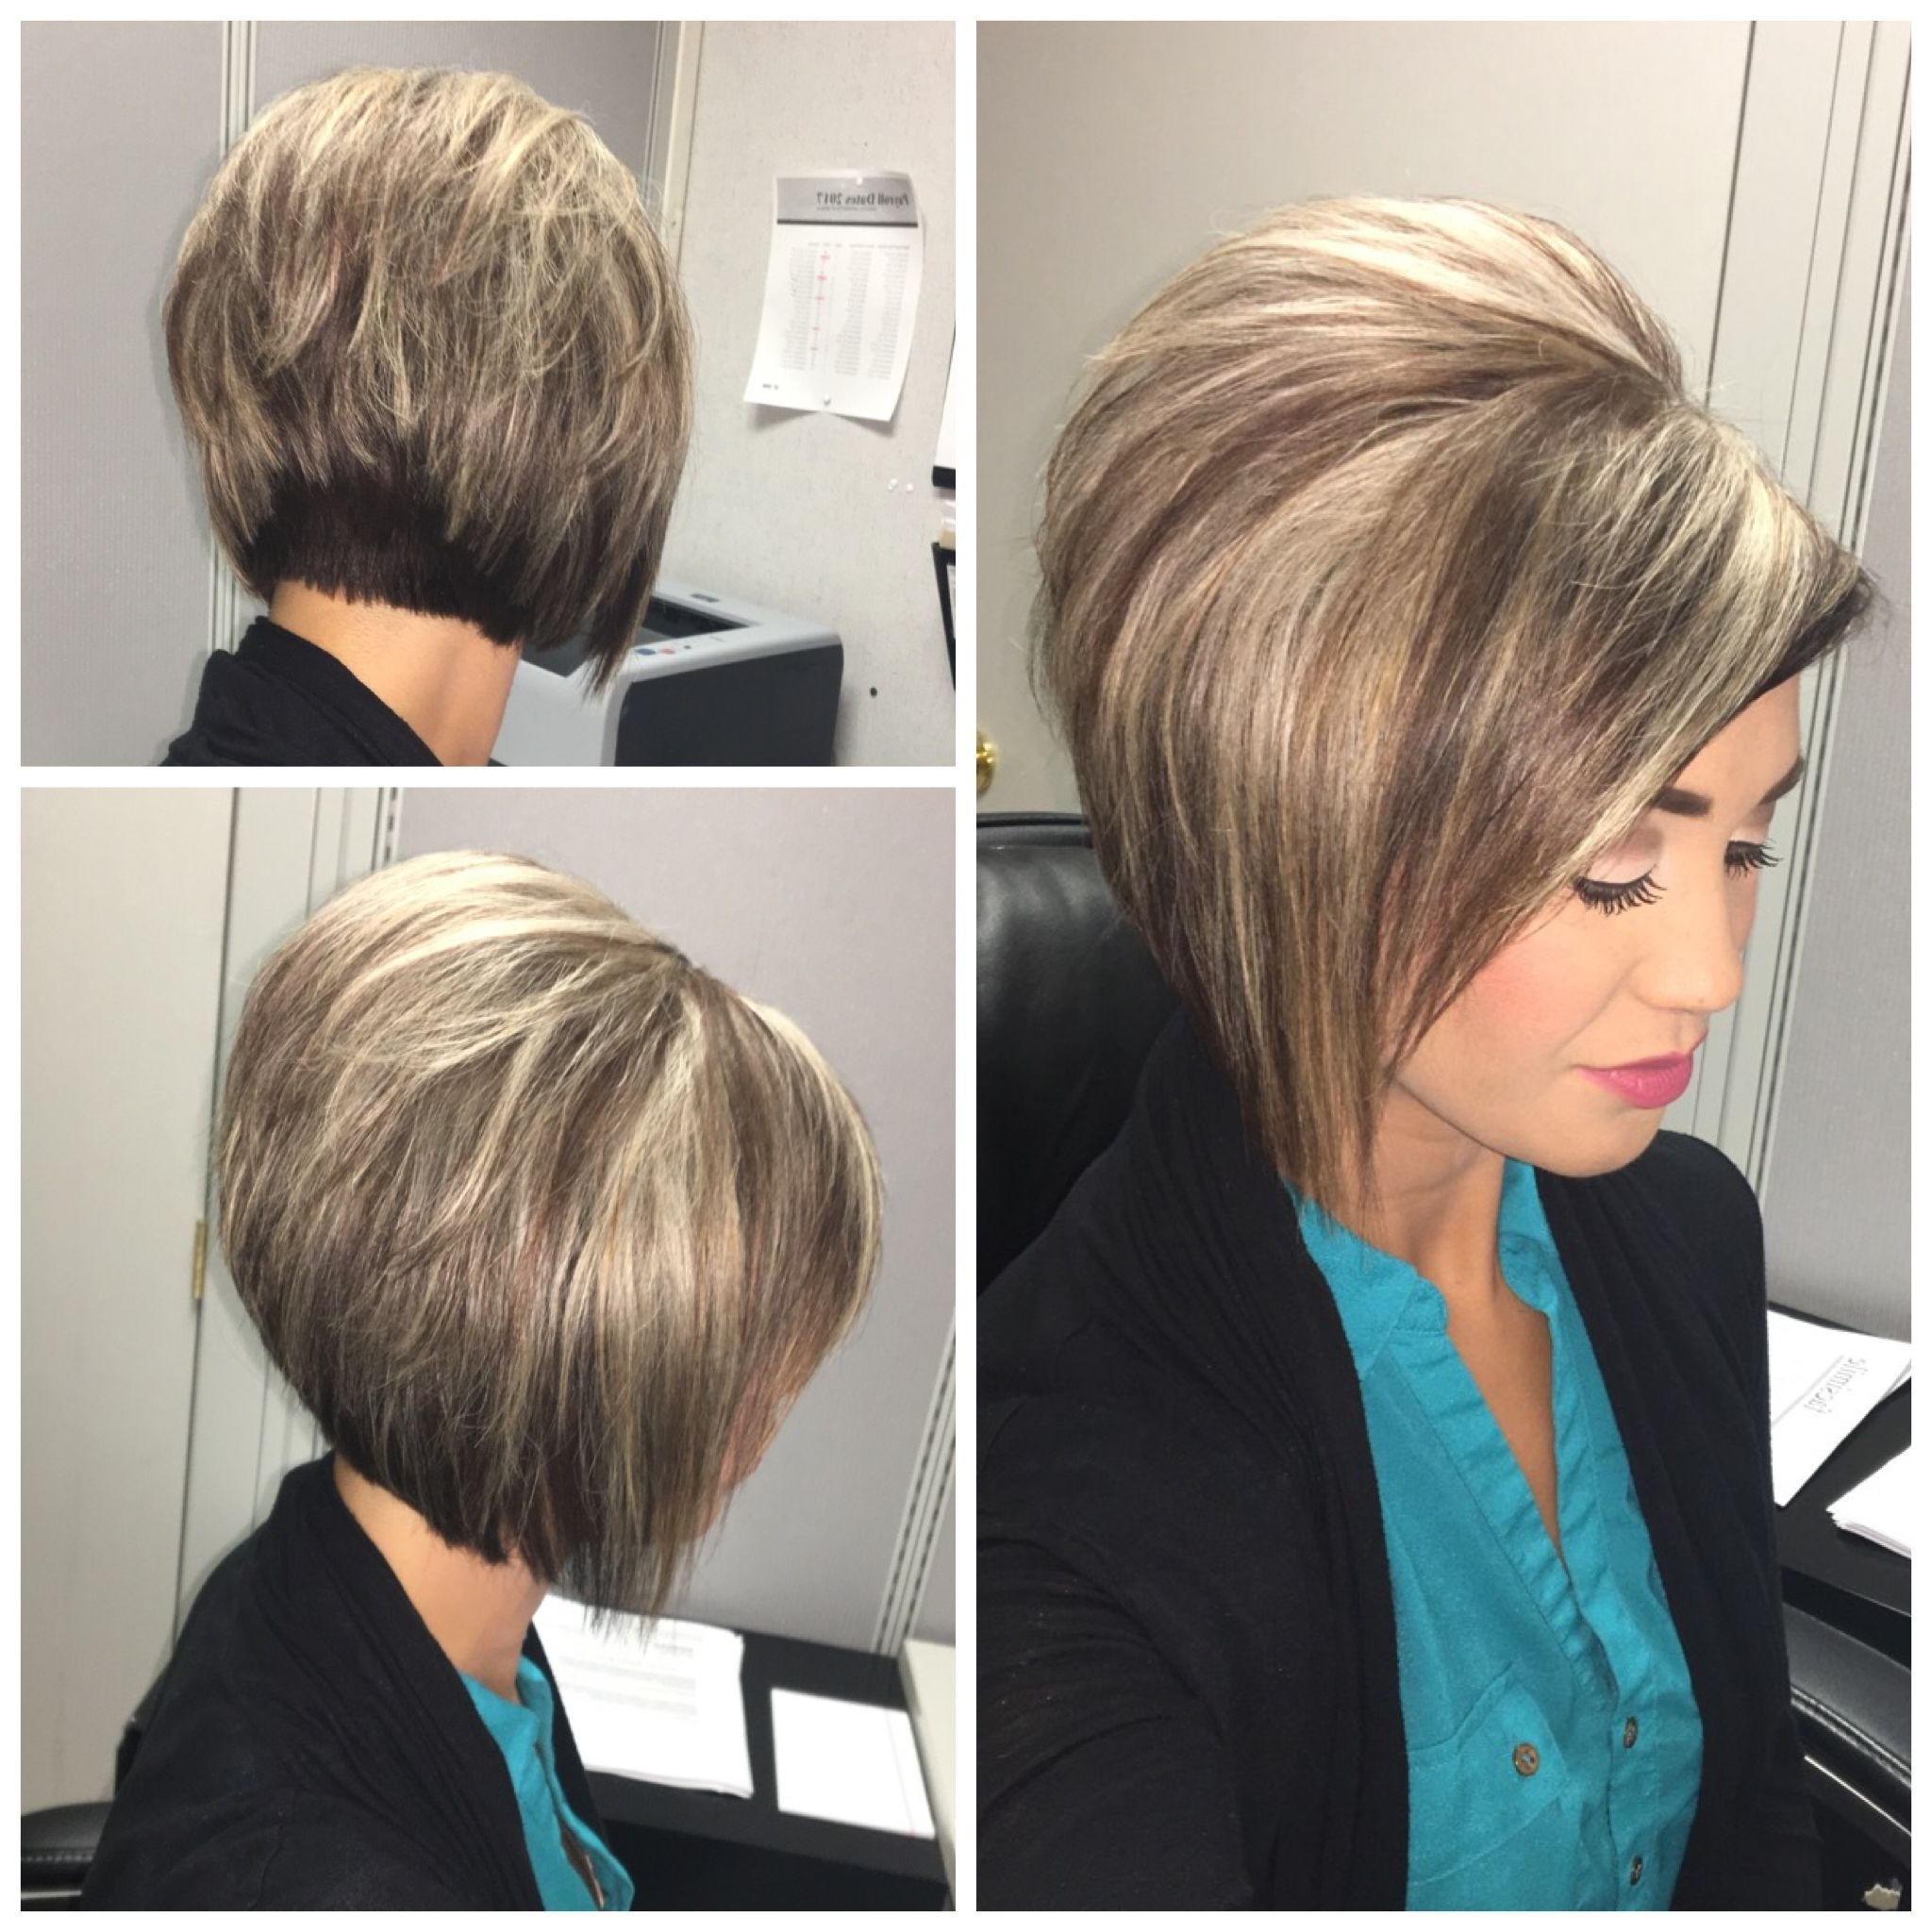 Hair Intended For Current Solid White Blonde Bob Hairstyles (View 9 of 20)